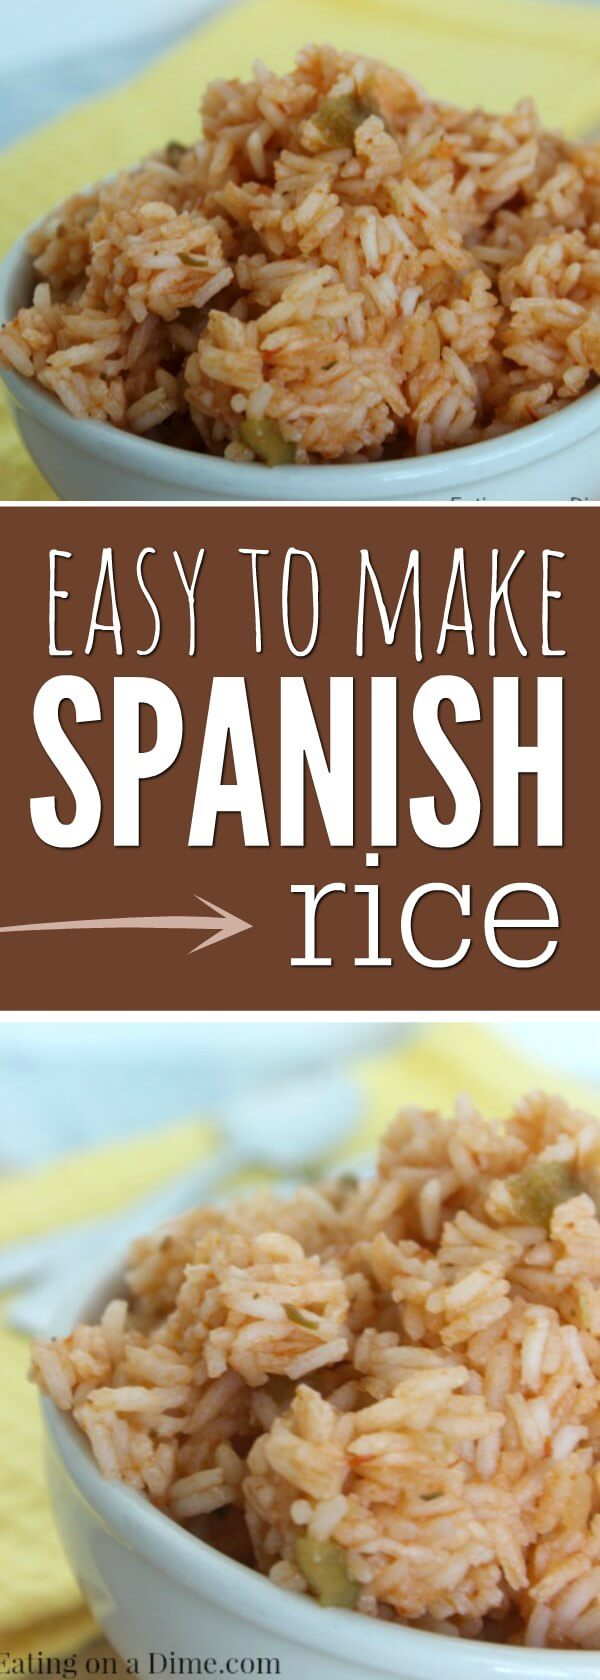 This recipe for Spanish rice tastes just like the restaurants. Try this easy Spanish rice recipe. Homemade Spanish rice is so good.Best Spanish rice recipes.